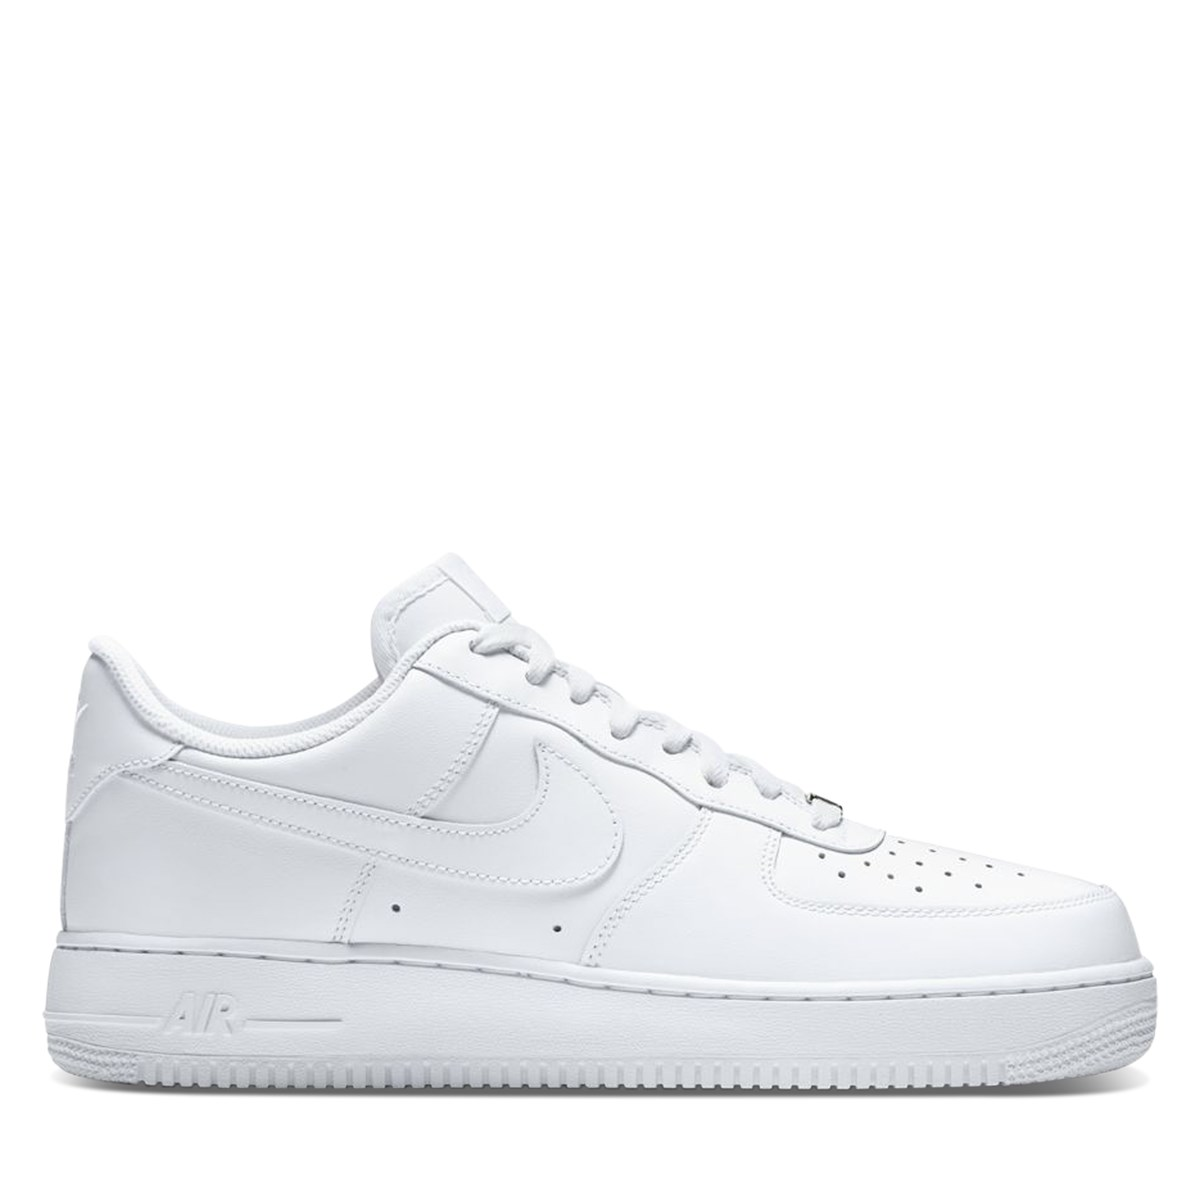 Men's Air Force 1 '07 Sneakers in White